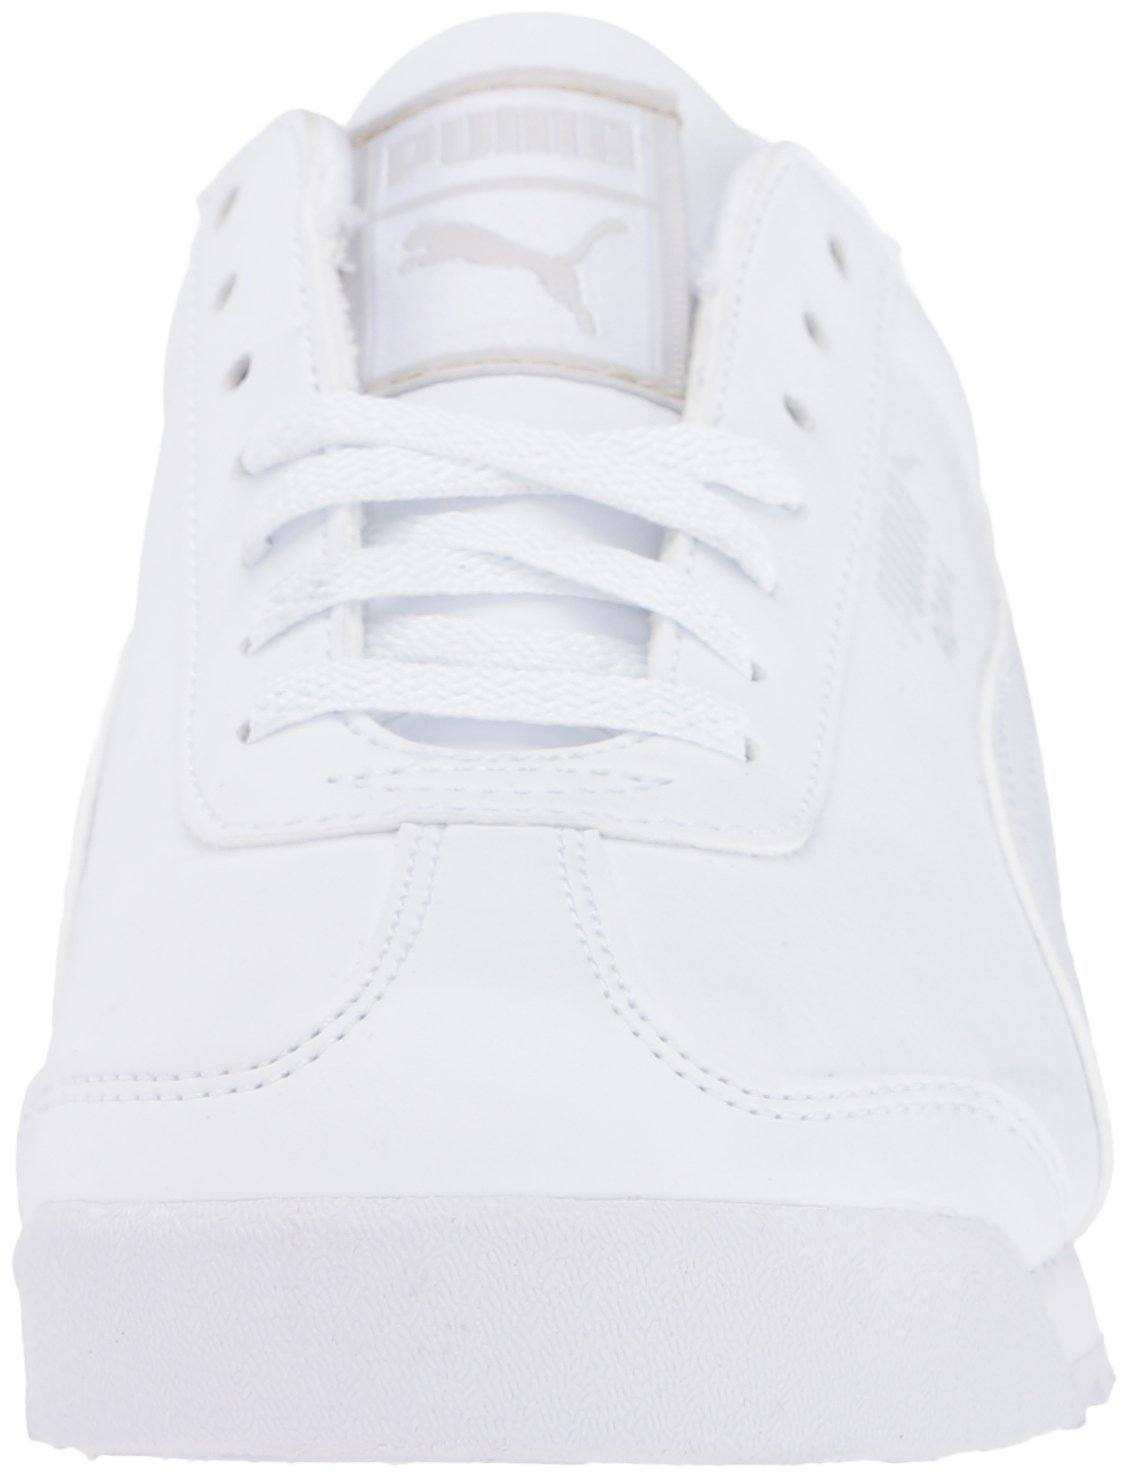 PUMA Roma Basic JR Sneaker , White/Light Gray, 3 M US Little Kid by PUMA (Image #4)